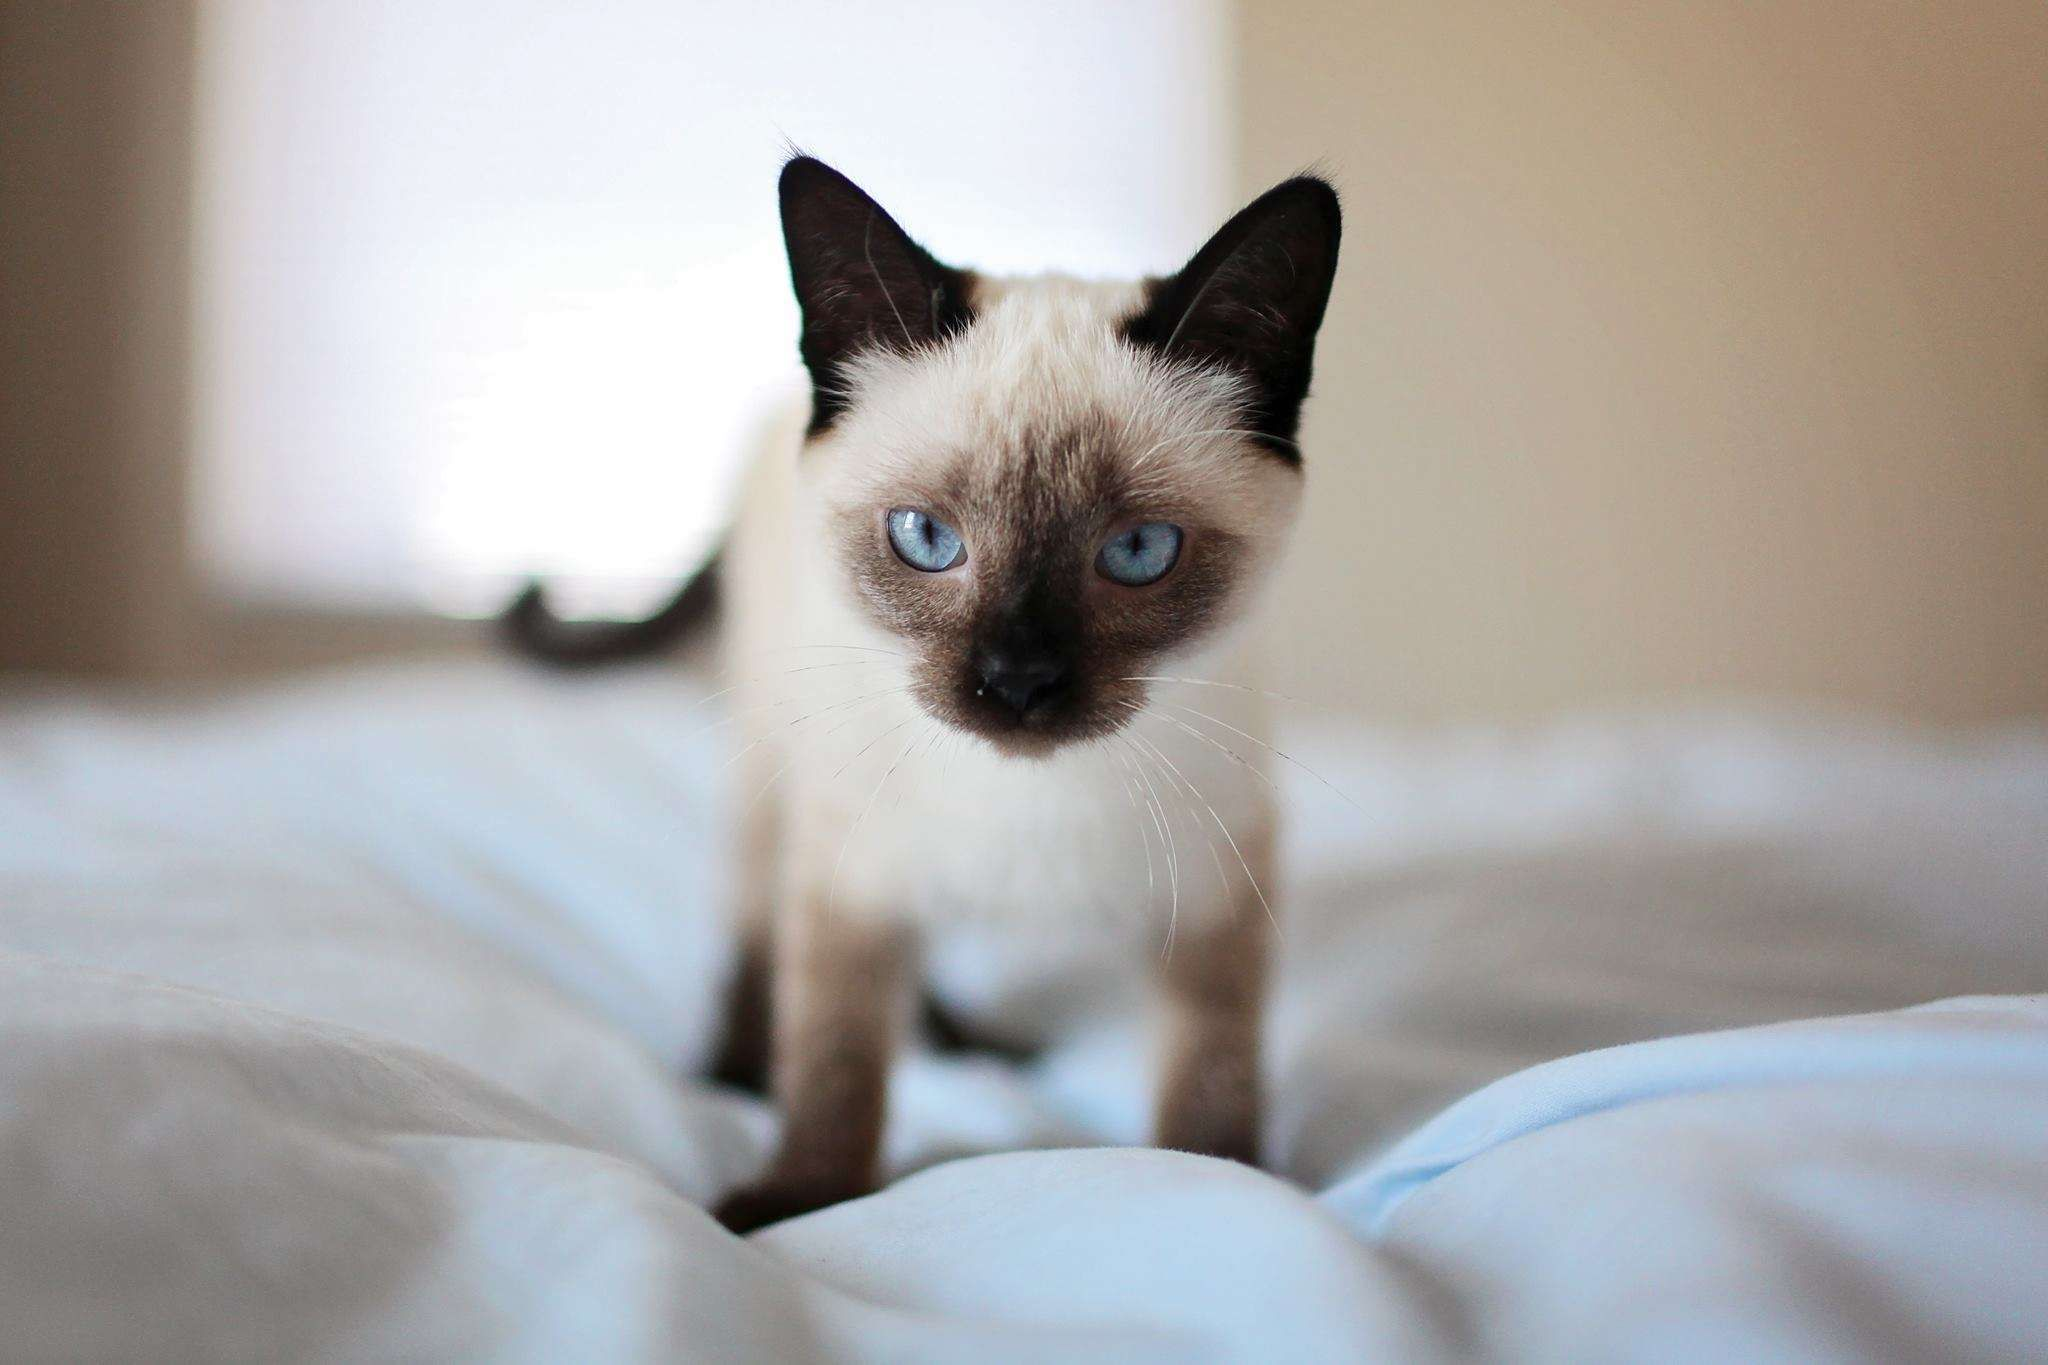 adorable #animal #bed #blue eyes #blur #cat #close up #cute #depth ...